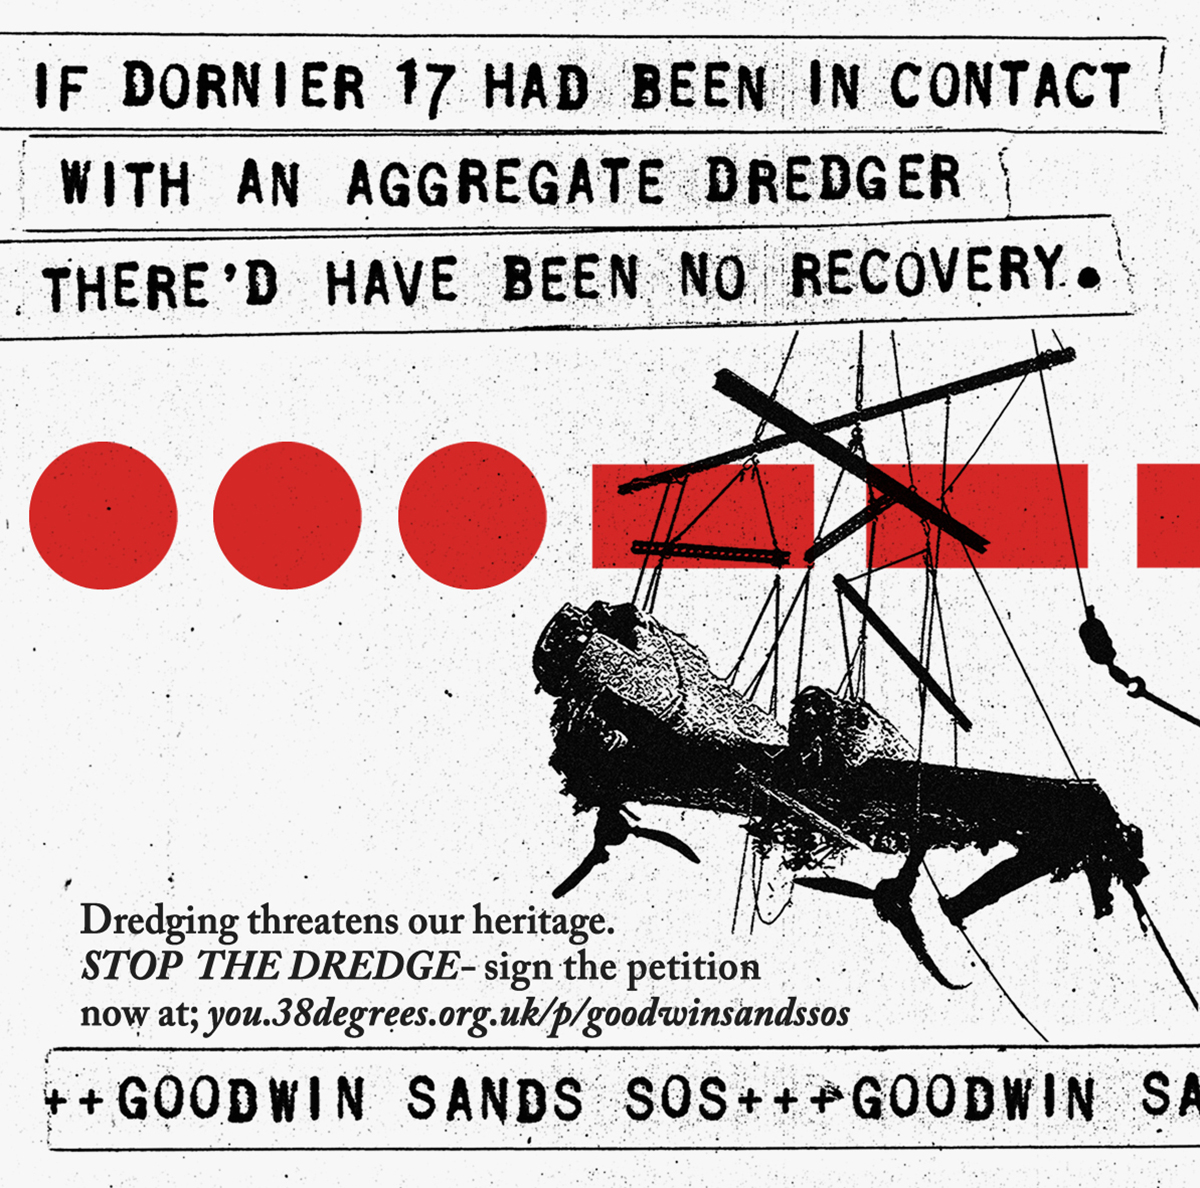 Richard Evans Goodwin Sands campaign 6